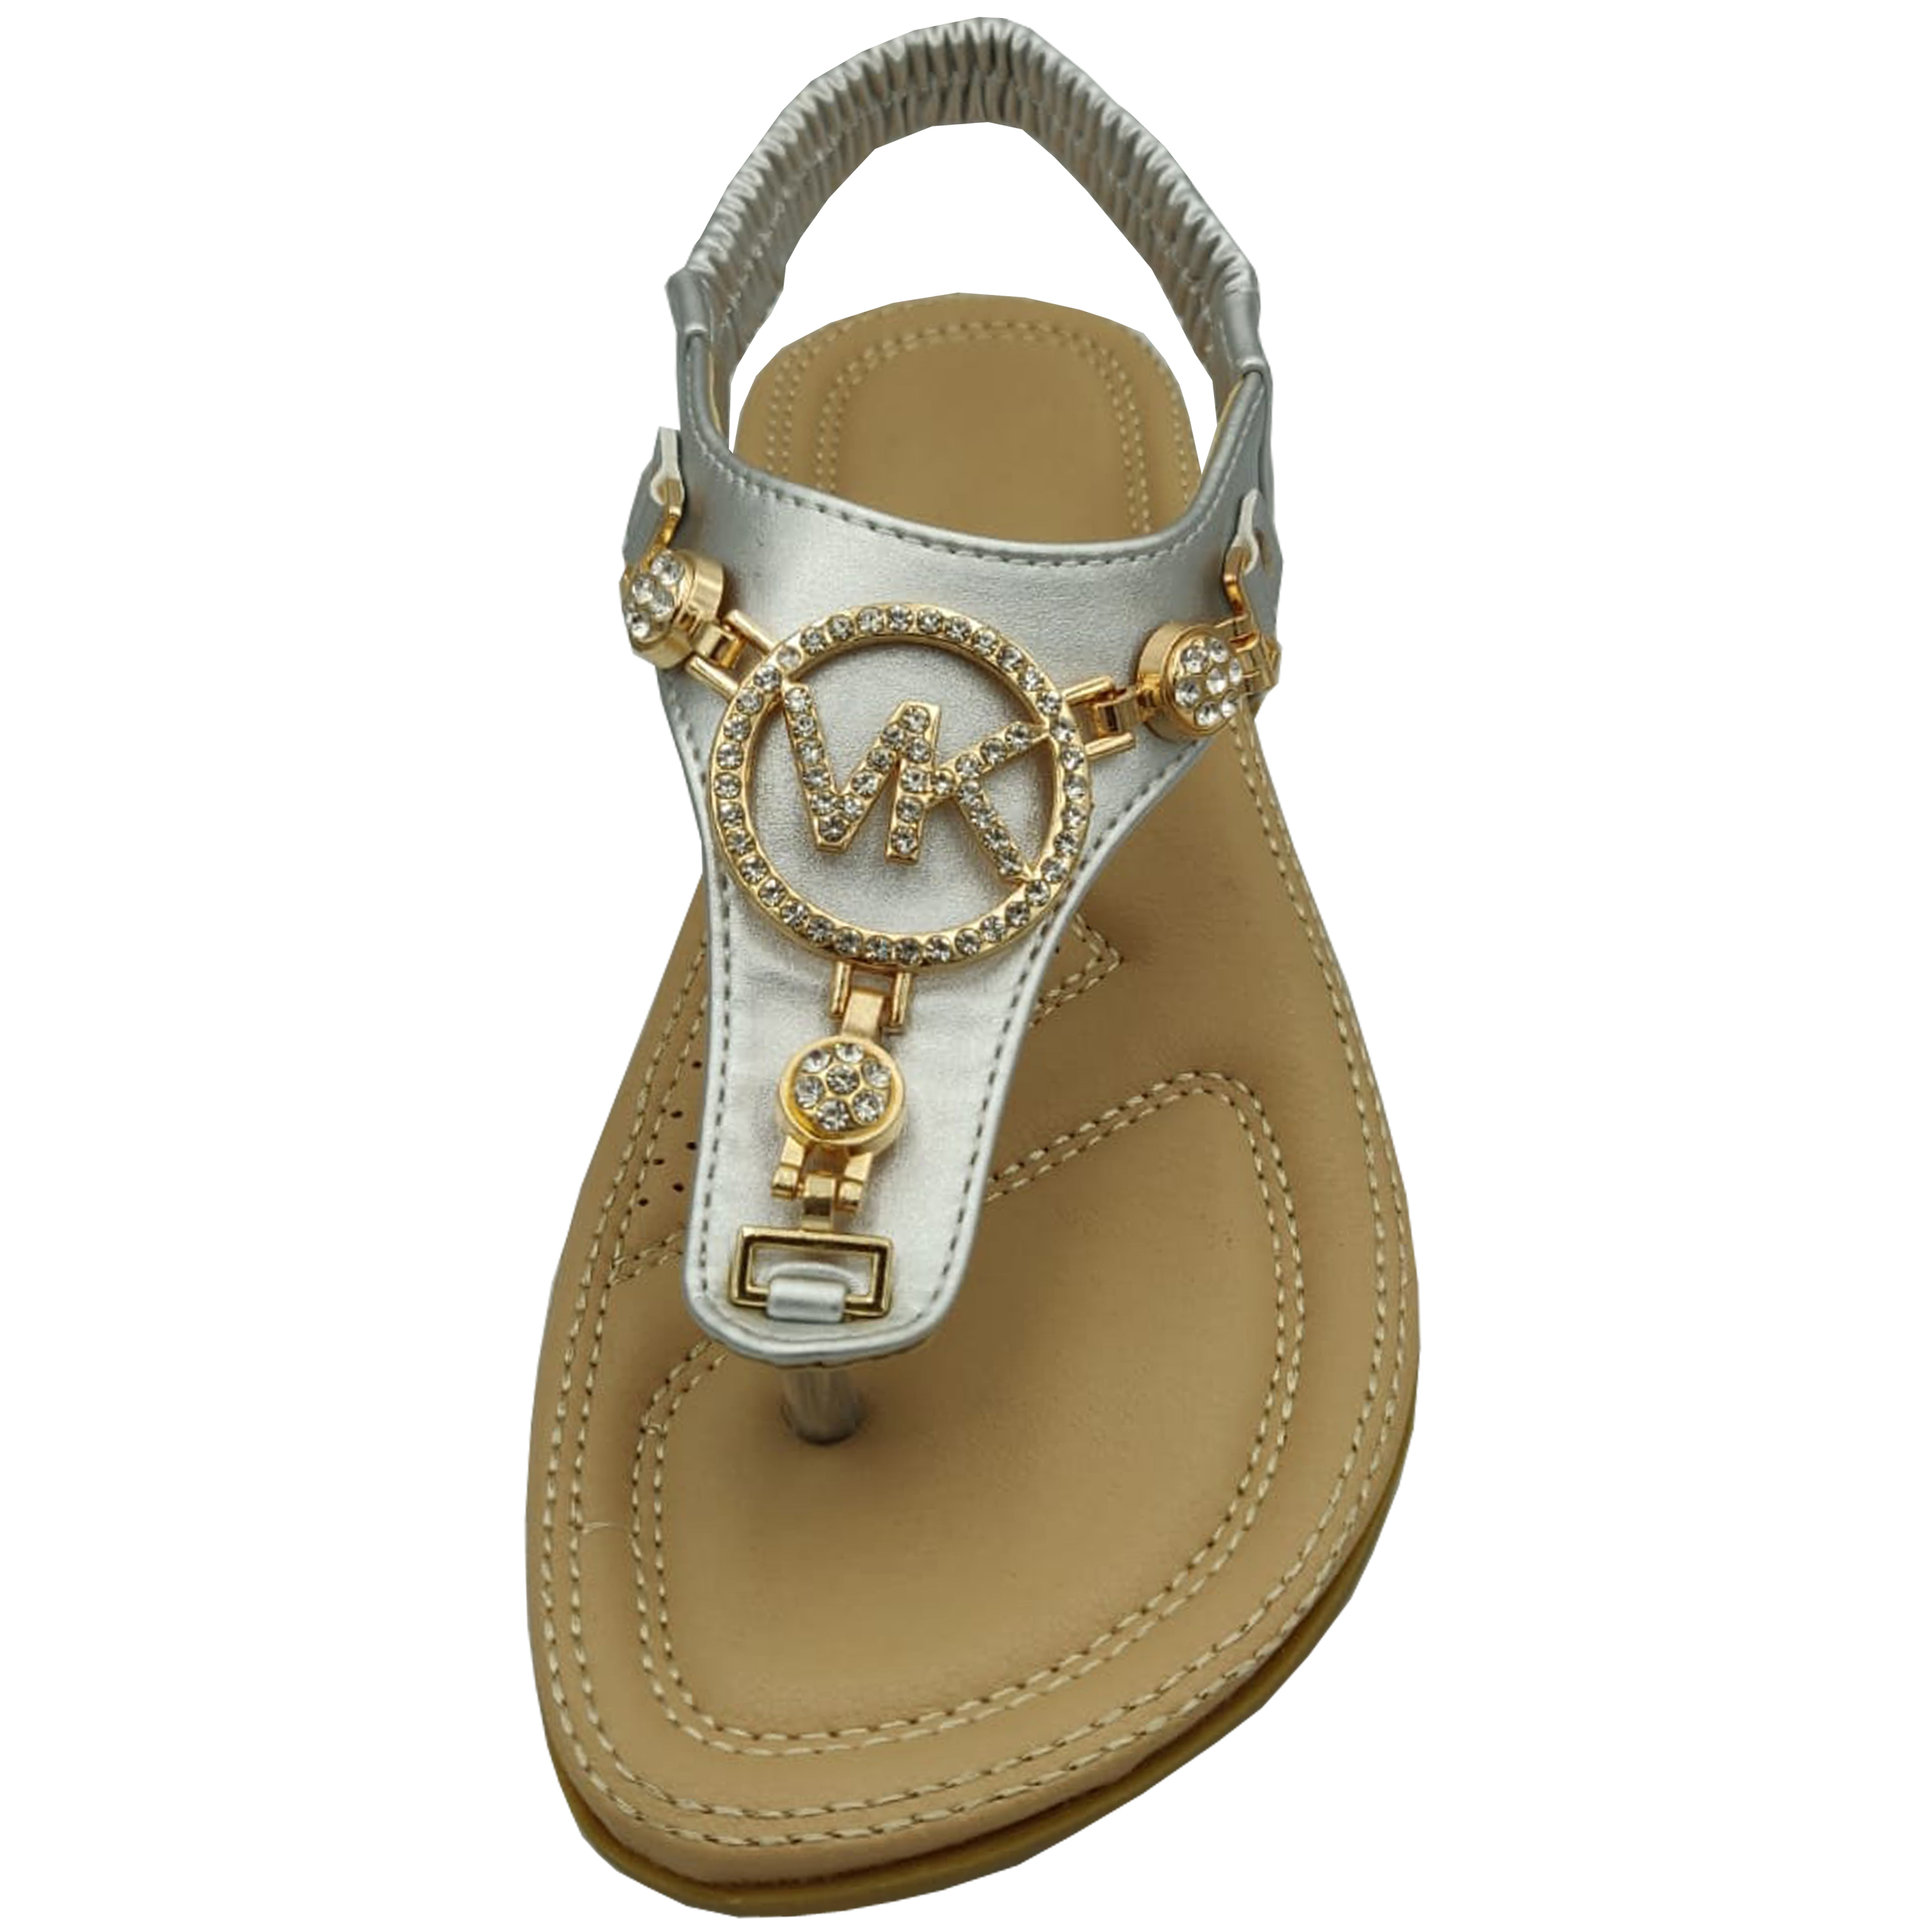 Ladies-Flat-Sandals-Womens-Diamante-Sling-Back-Toe-Post-Shoes-Summer-Fashion-New thumbnail 7